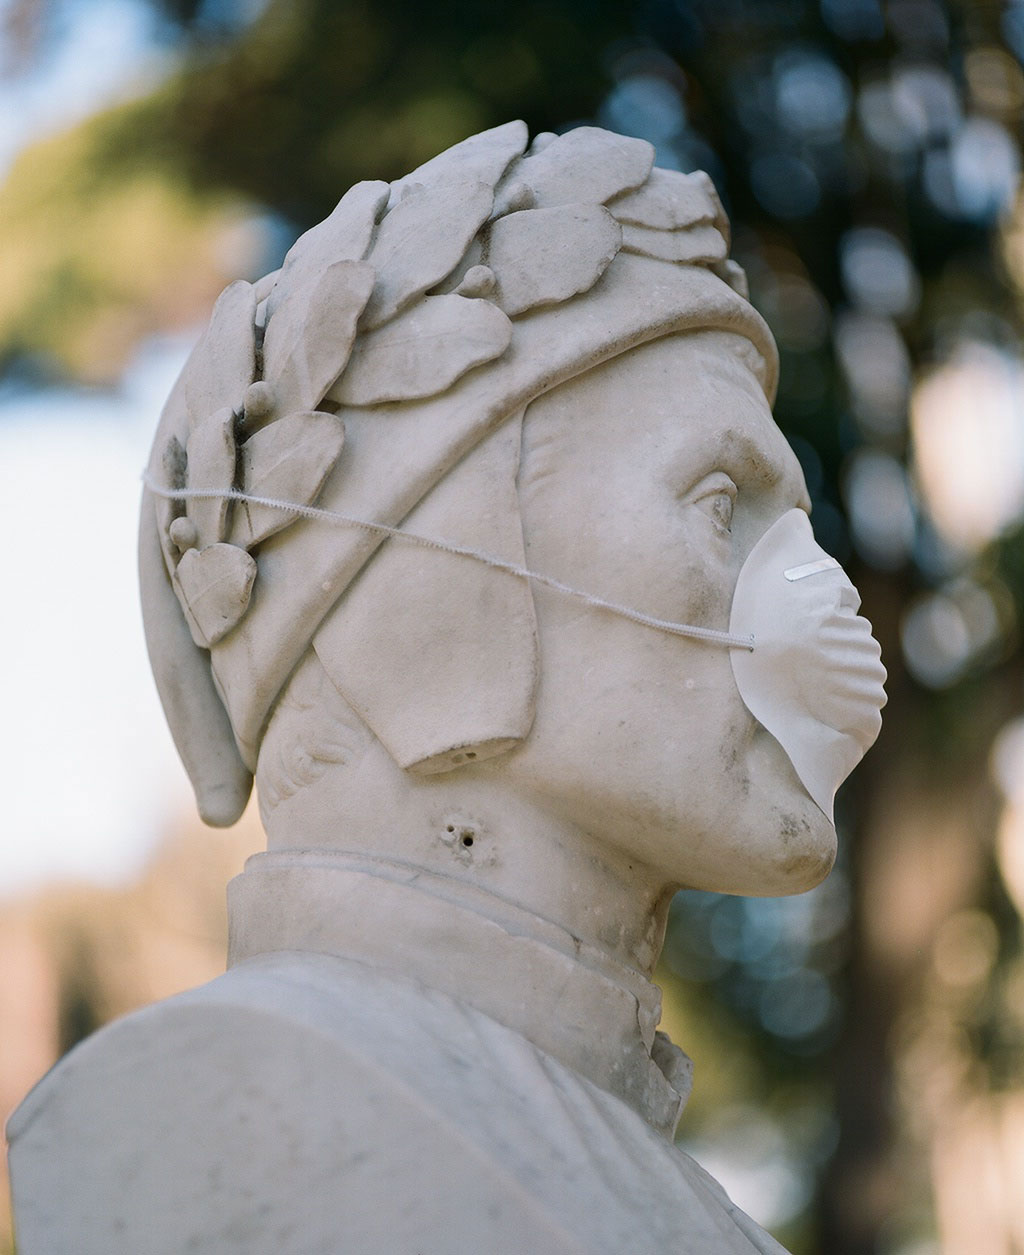 Bust of poet Dante Alighieri (1265-1321) at Villa Borghese gardens, Rome. Photo © Federico Pestilli.